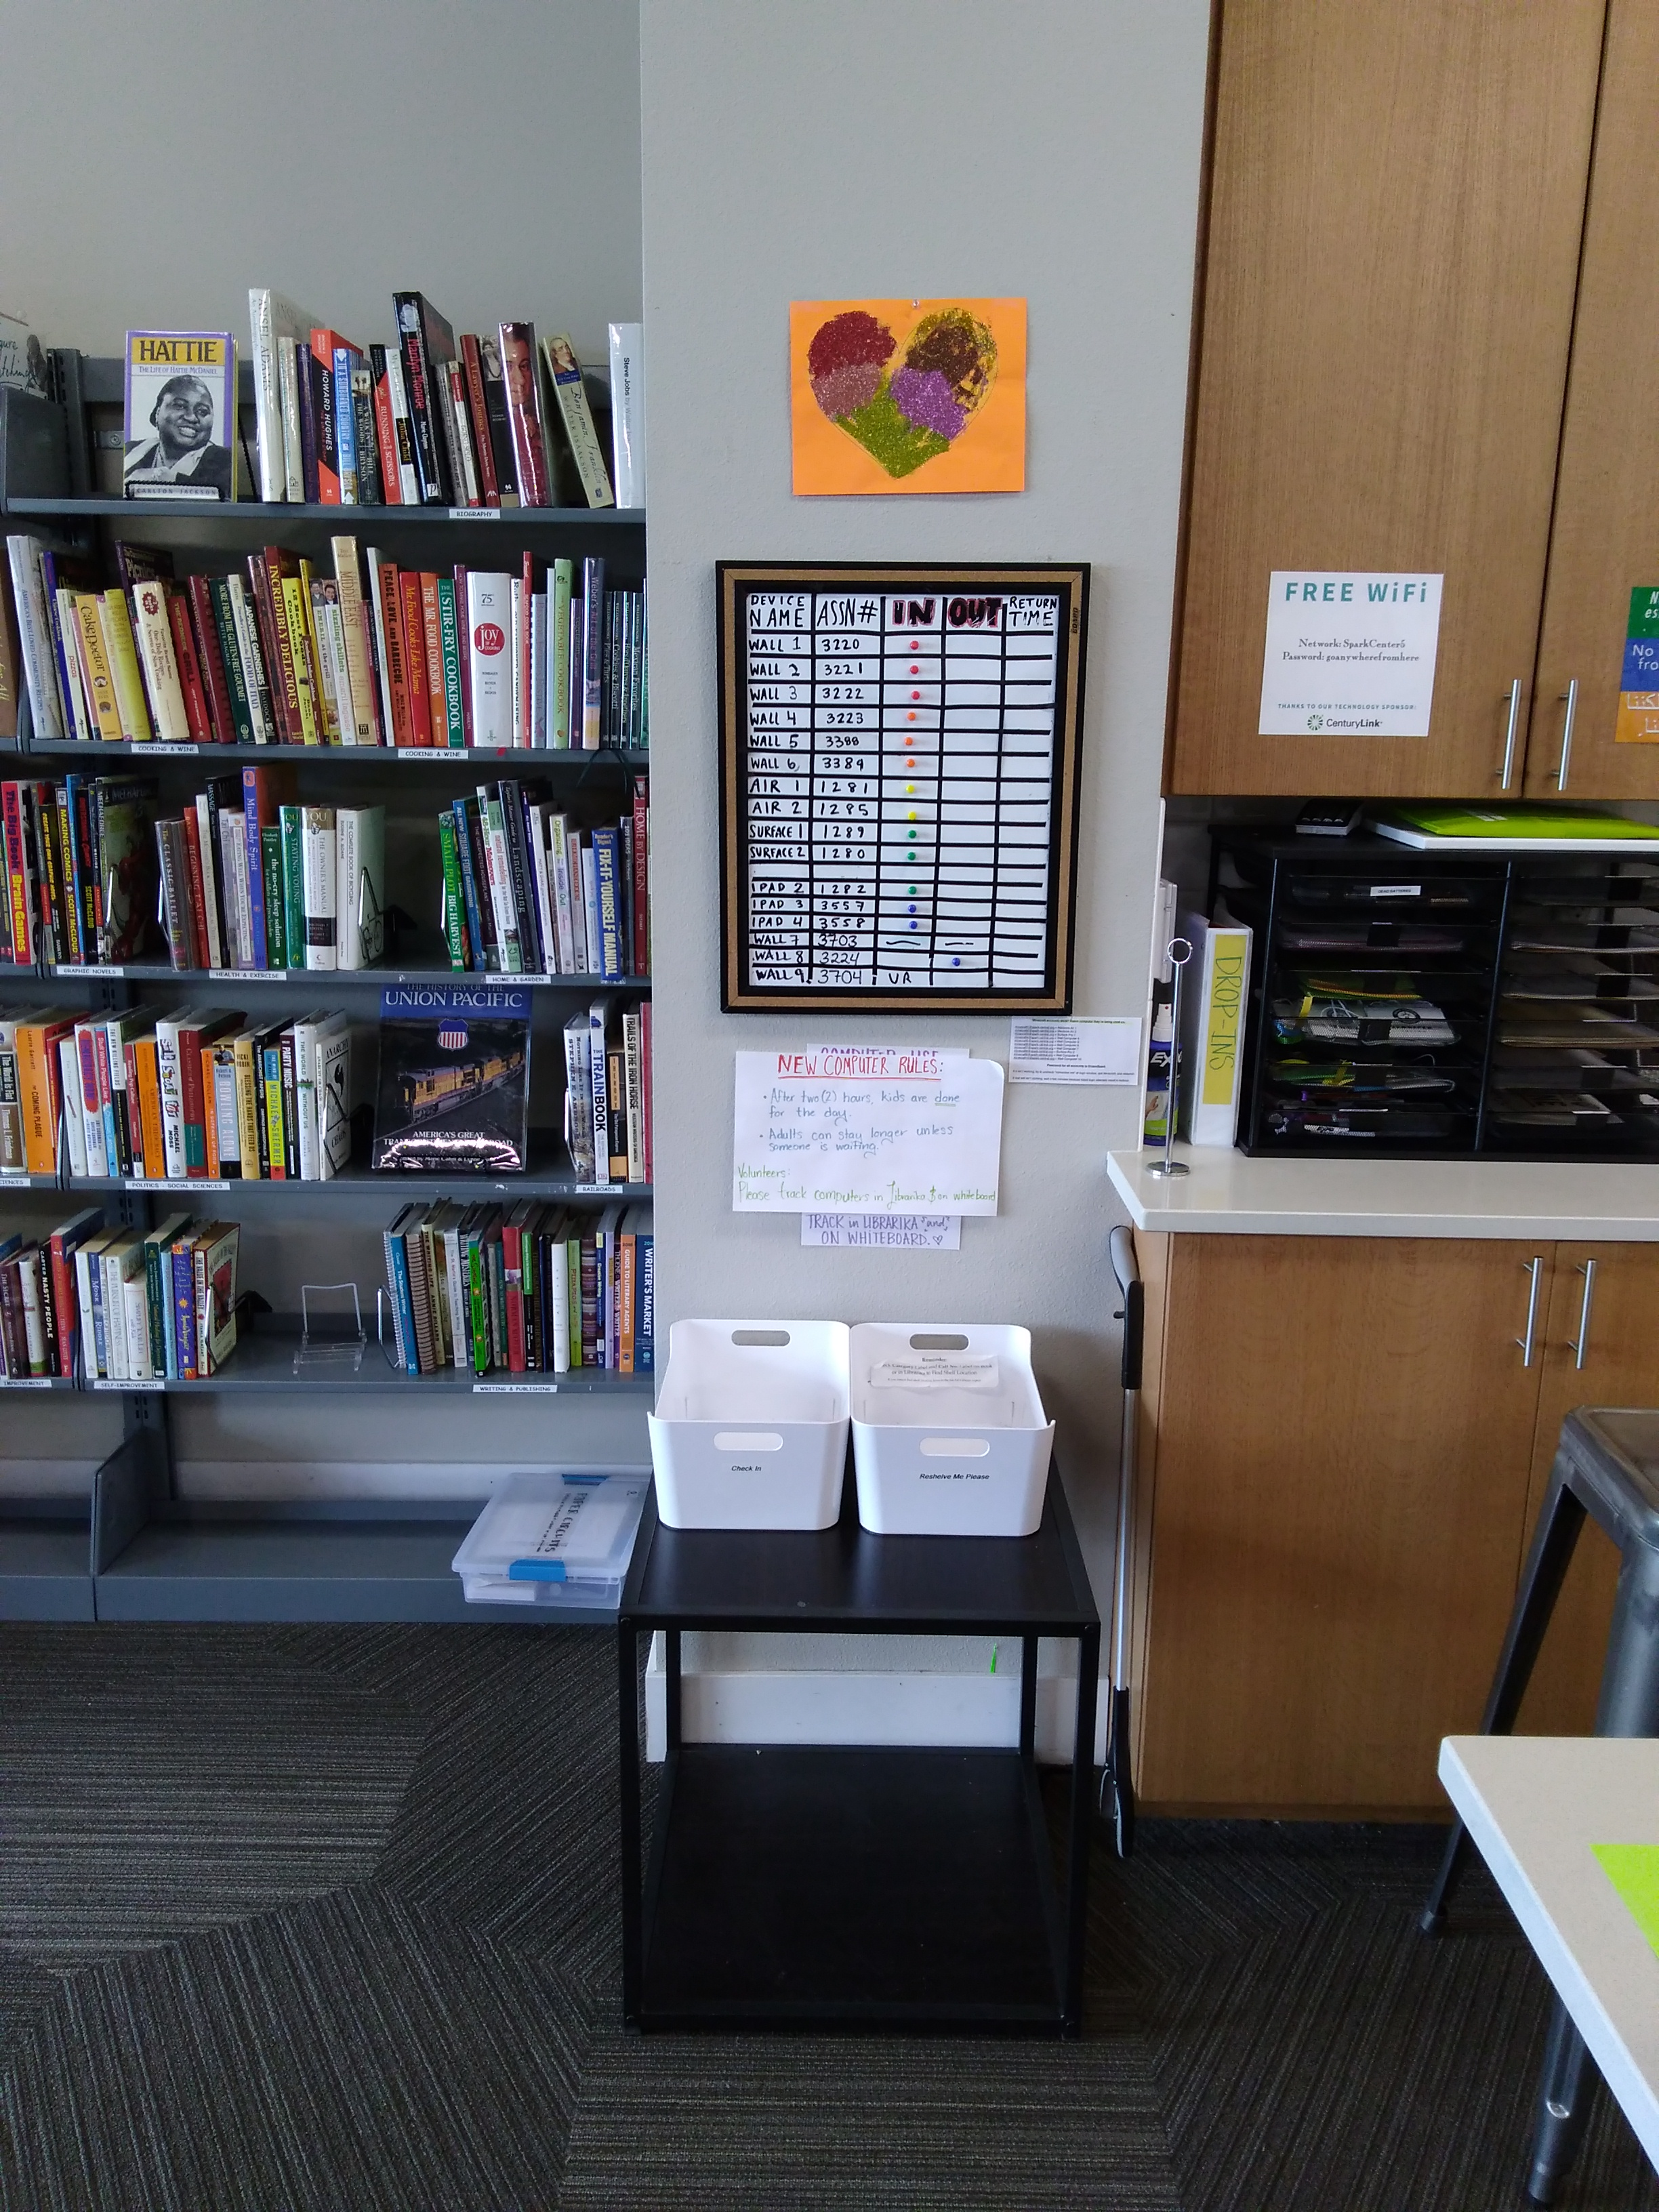 Sign Out Board - A sign out board on the back wall records which computers, tablets and laptops are in use.*See Computer Sign-out Procedure for detailsA new cabinet, located below the sign-out board, holds laptops and surface pro tablets. Baskets for library resources that need to be checked in or filed are also located here.